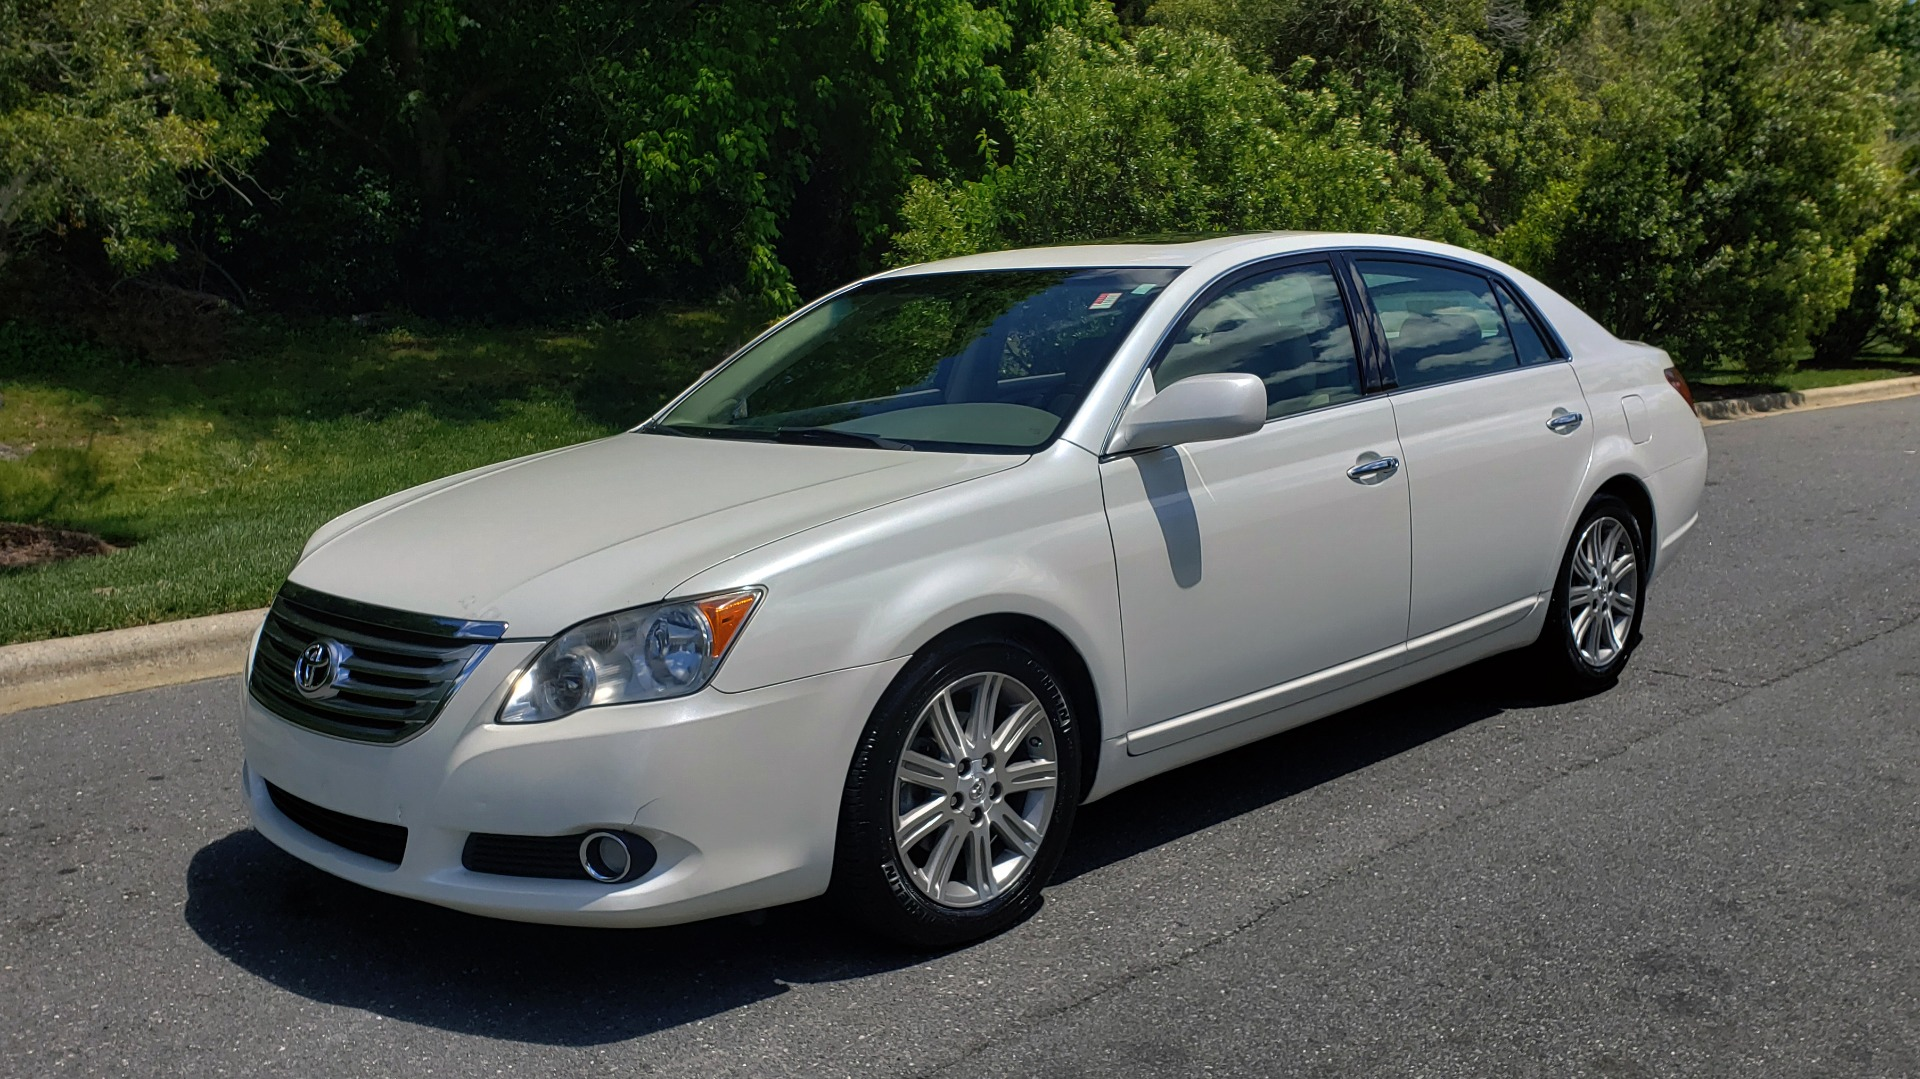 Used 2008 Toyota AVALON LIMITED V6 / FWD / SUNROOF / DYN RADAR CRUISE / BRAKE ASST for sale Sold at Formula Imports in Charlotte NC 28227 1